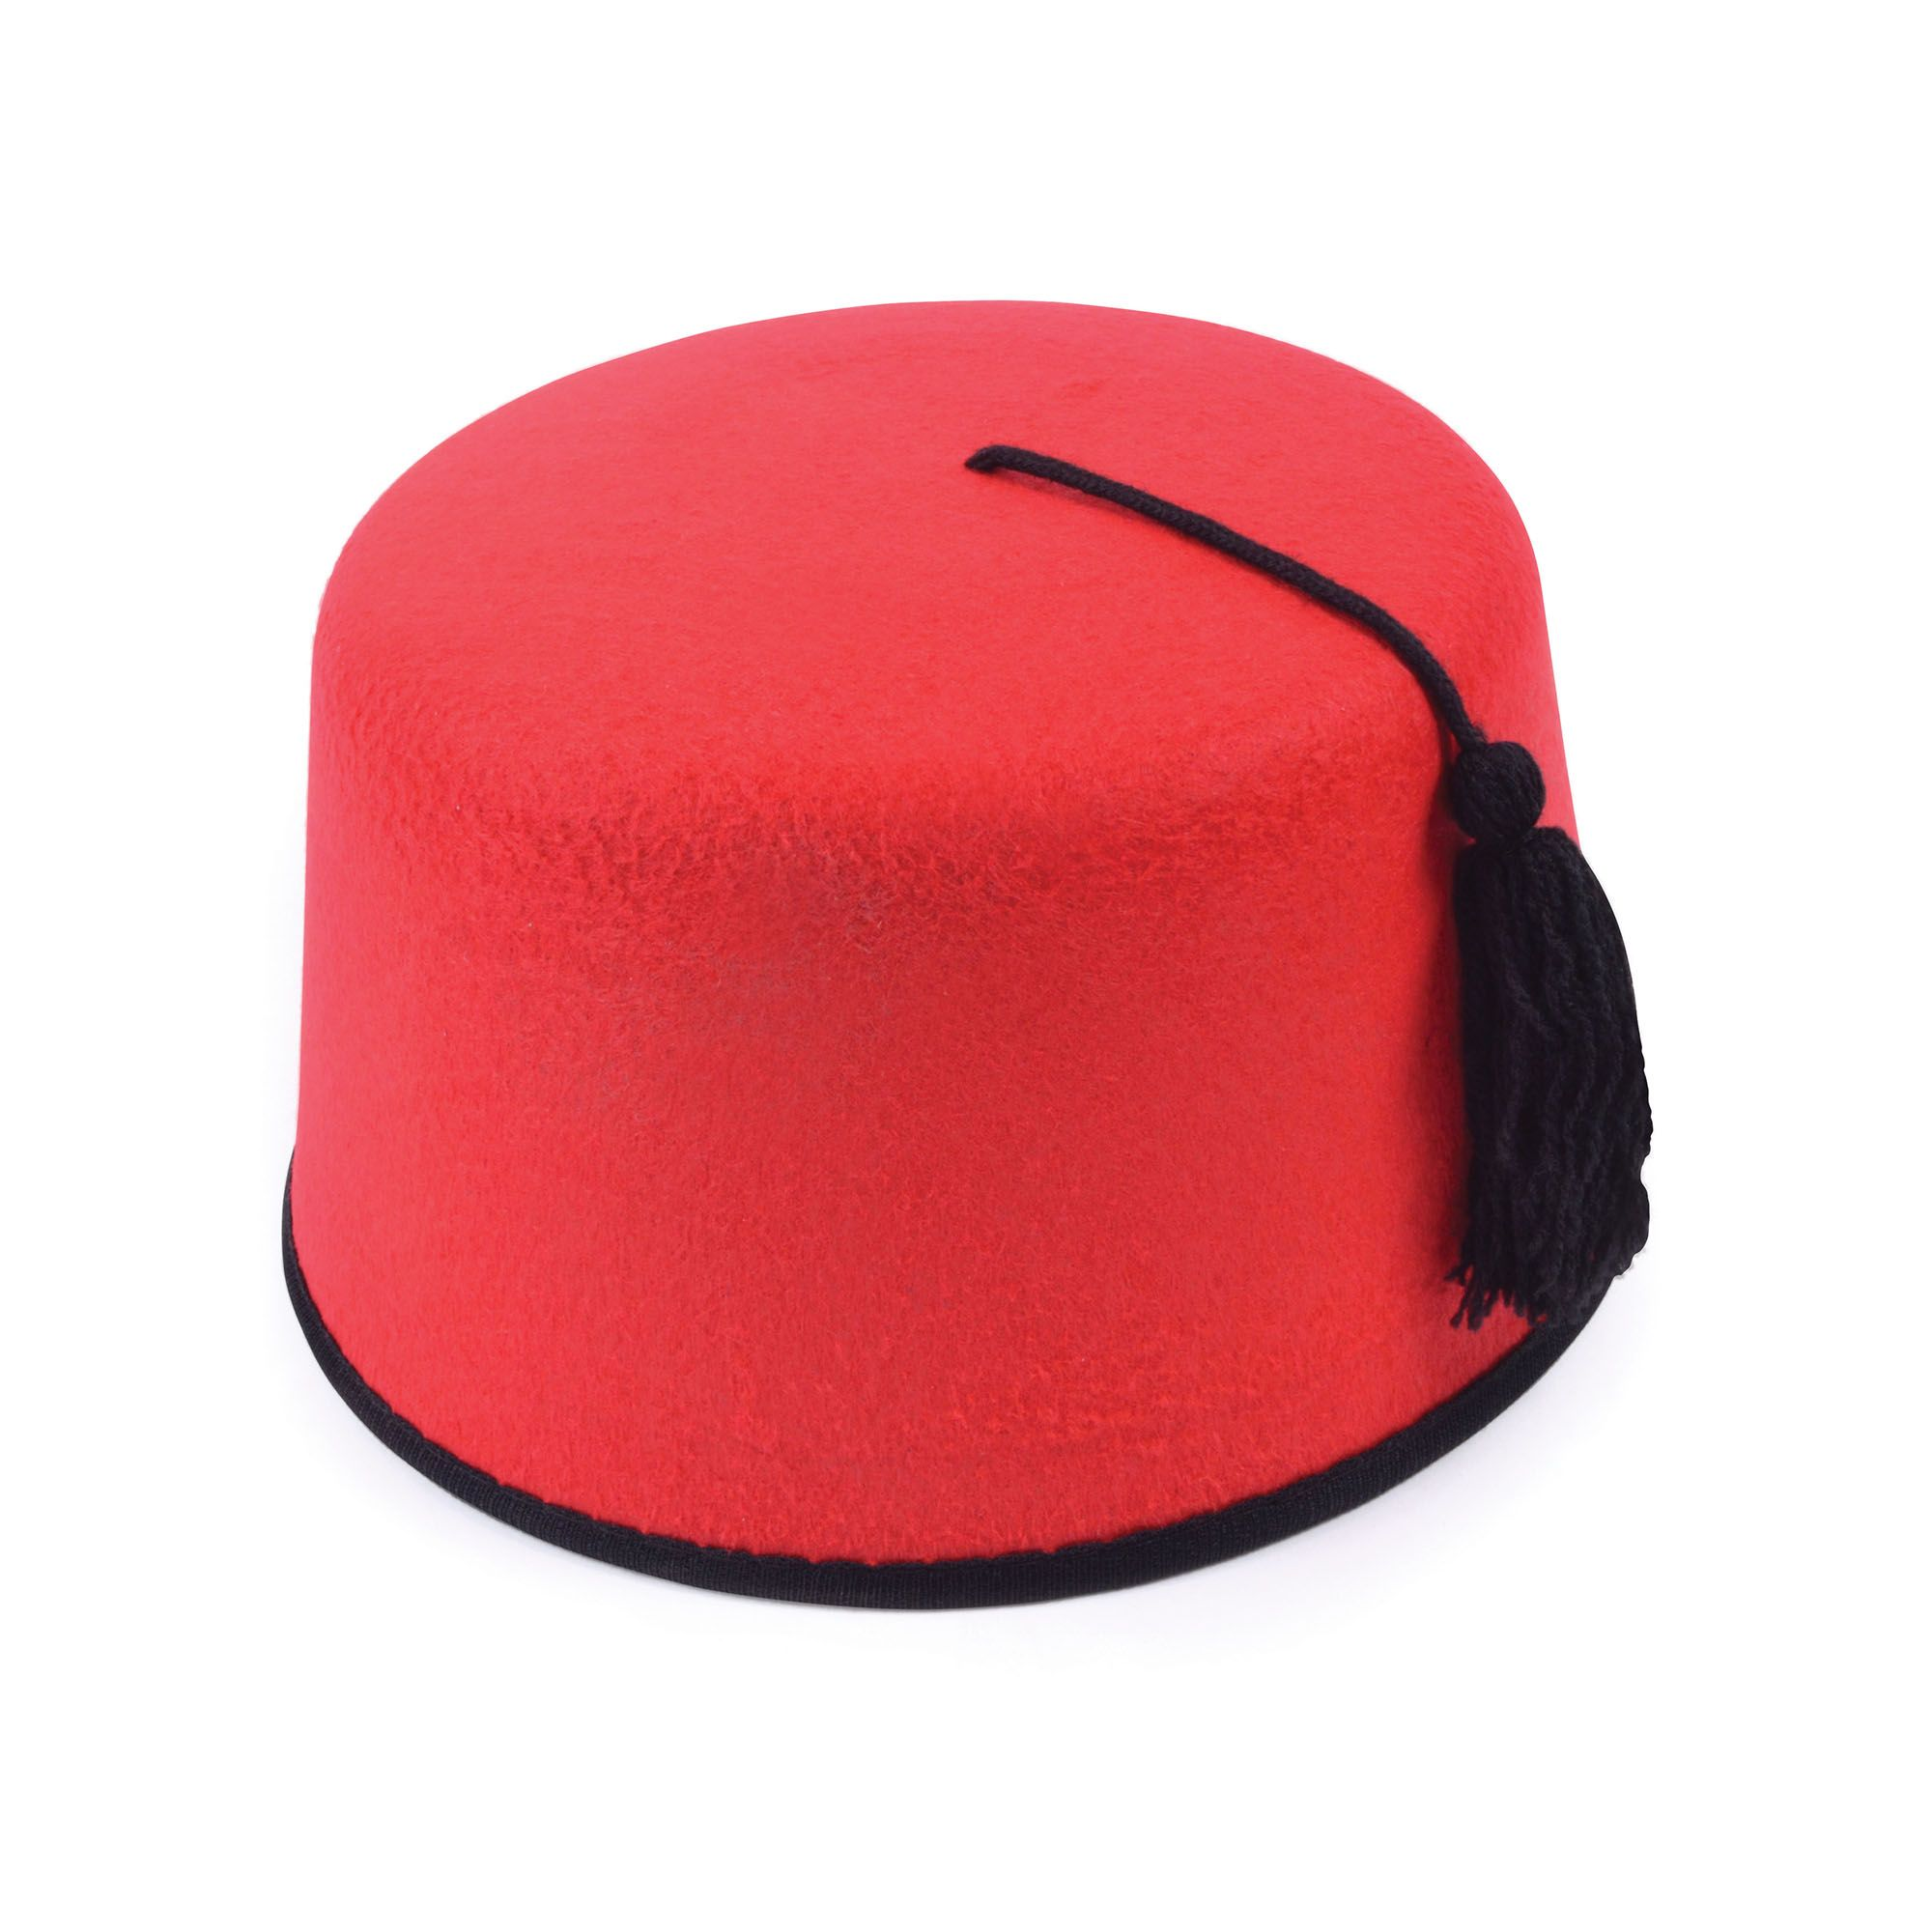 7b8bb4b61ee2d fez-felt-hat-egyptian-moroccan-magician-hat-fancy-dress -accessory-12222-p.jpg